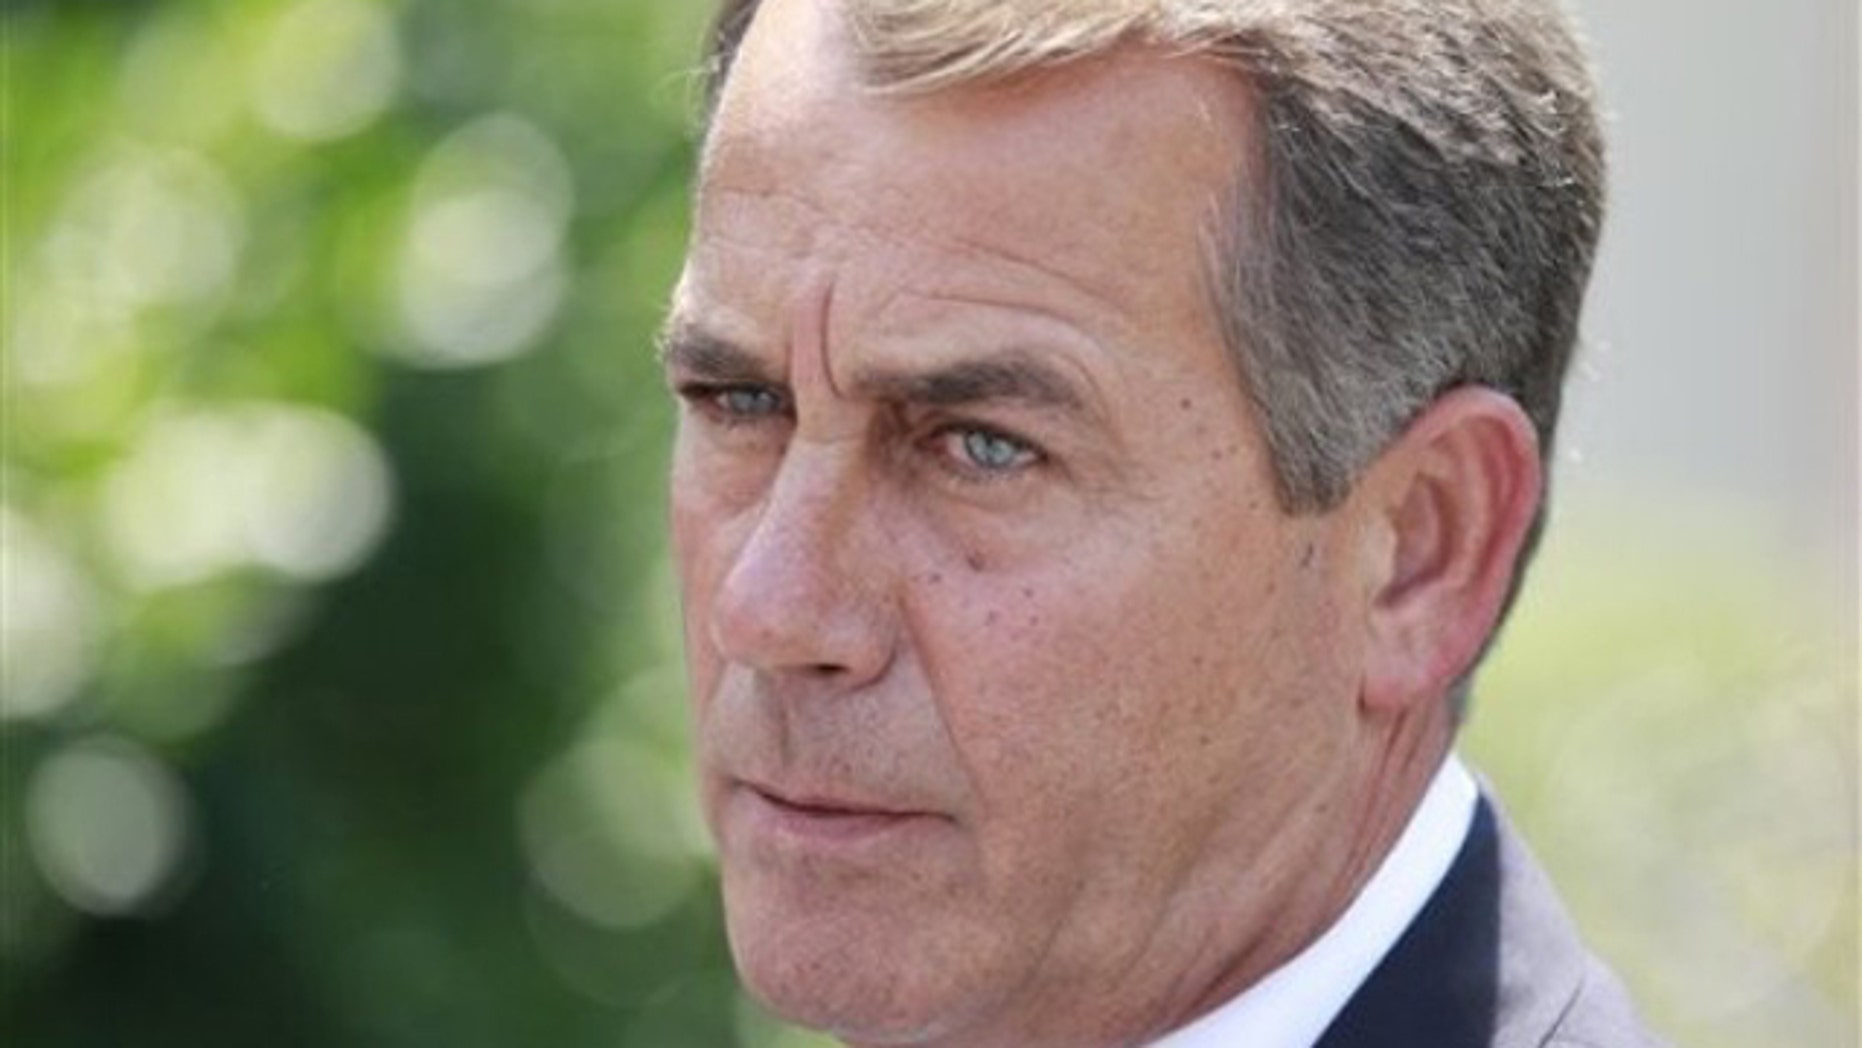 In this June 10 photo, House Minority Leader John Boehner of Ohio speaks to reporters outside the White House. (AP Photo)